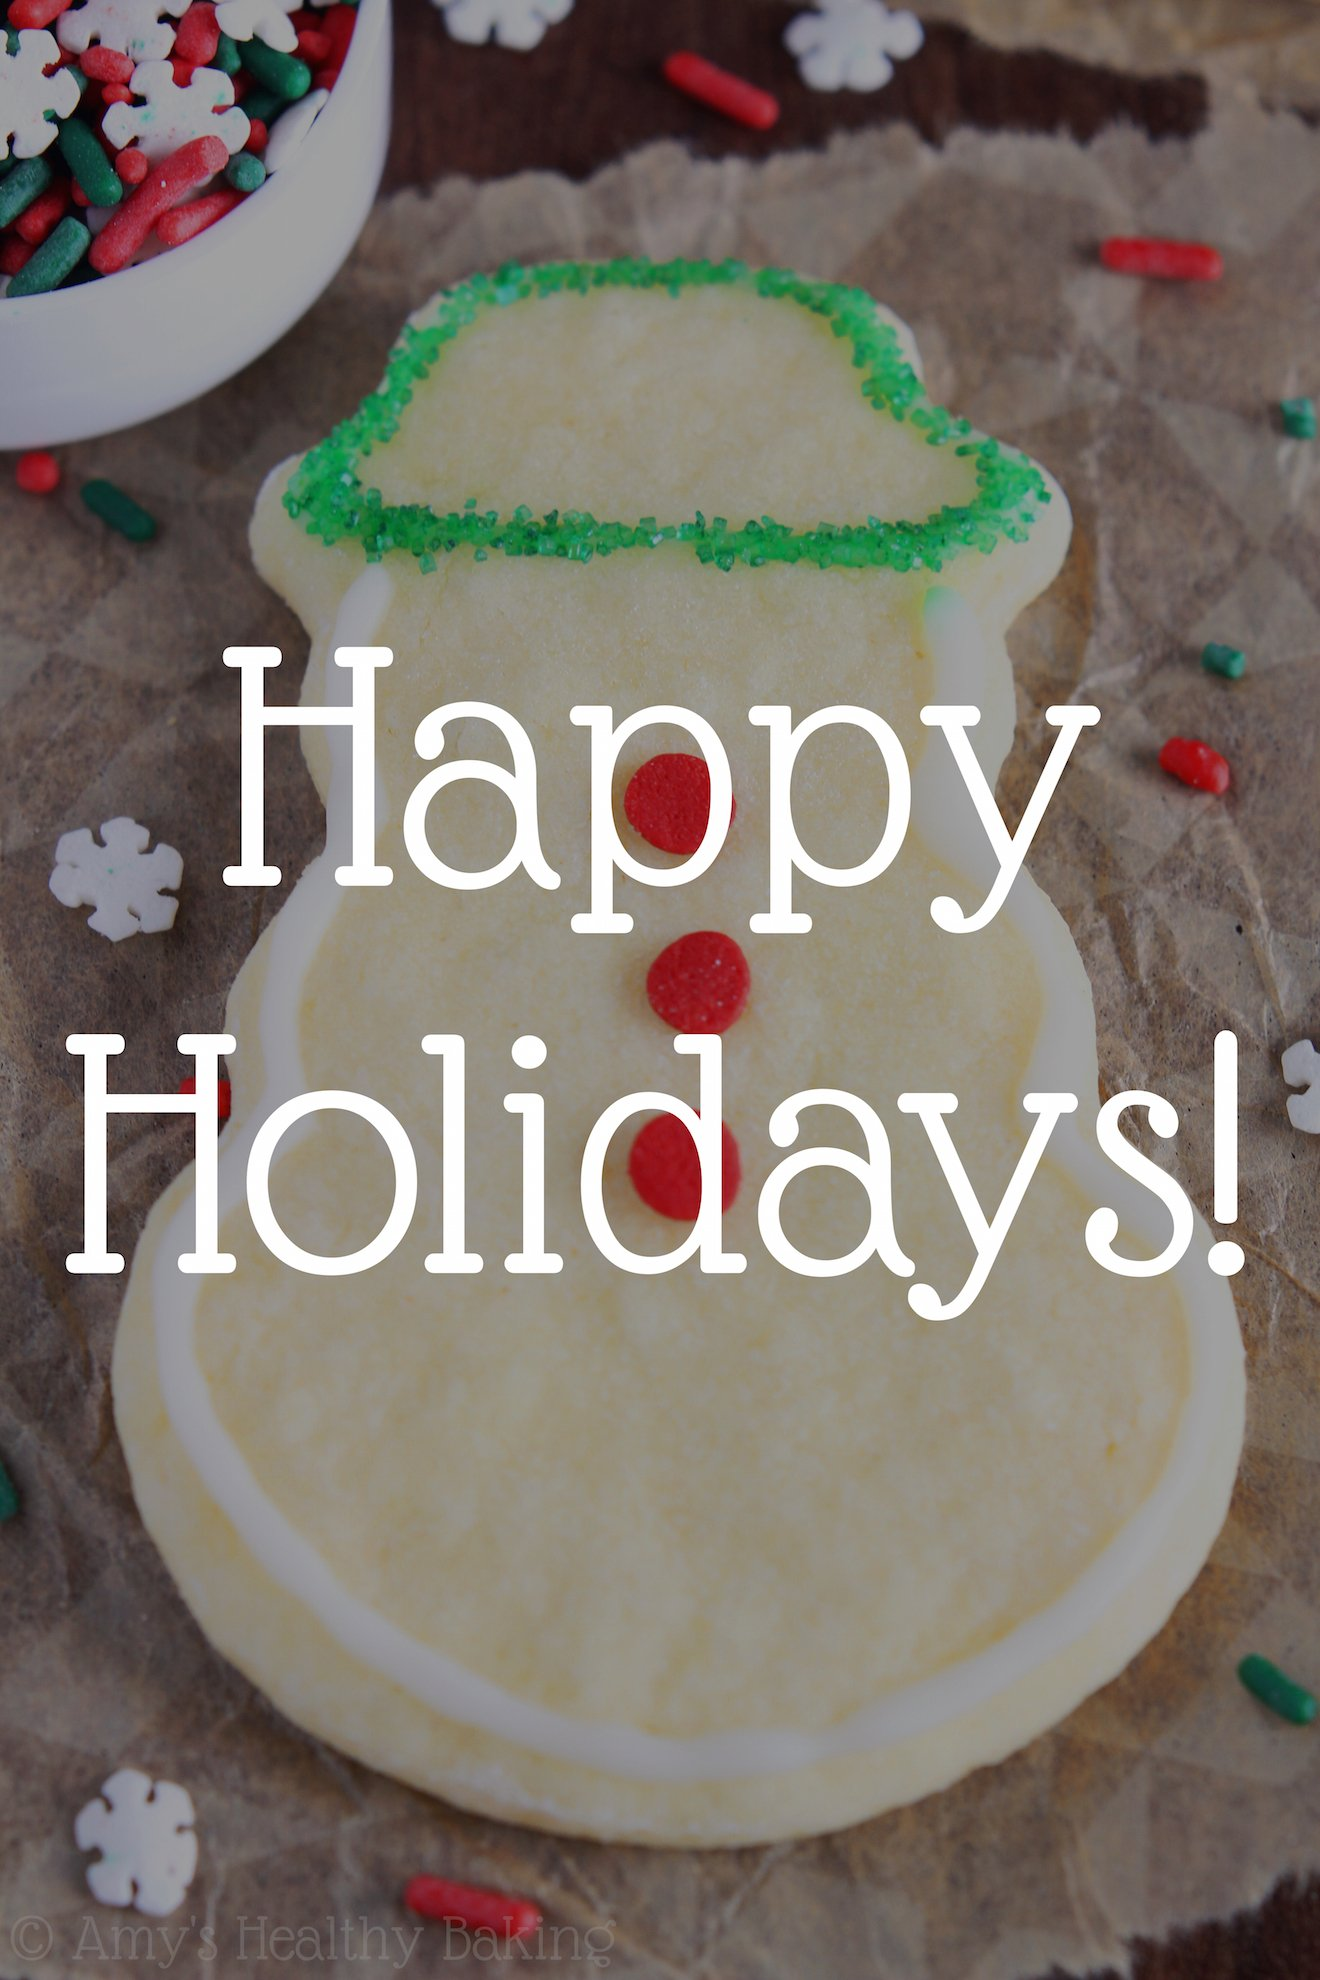 Happy Holidays! ♥ Amy's Healthy Baking